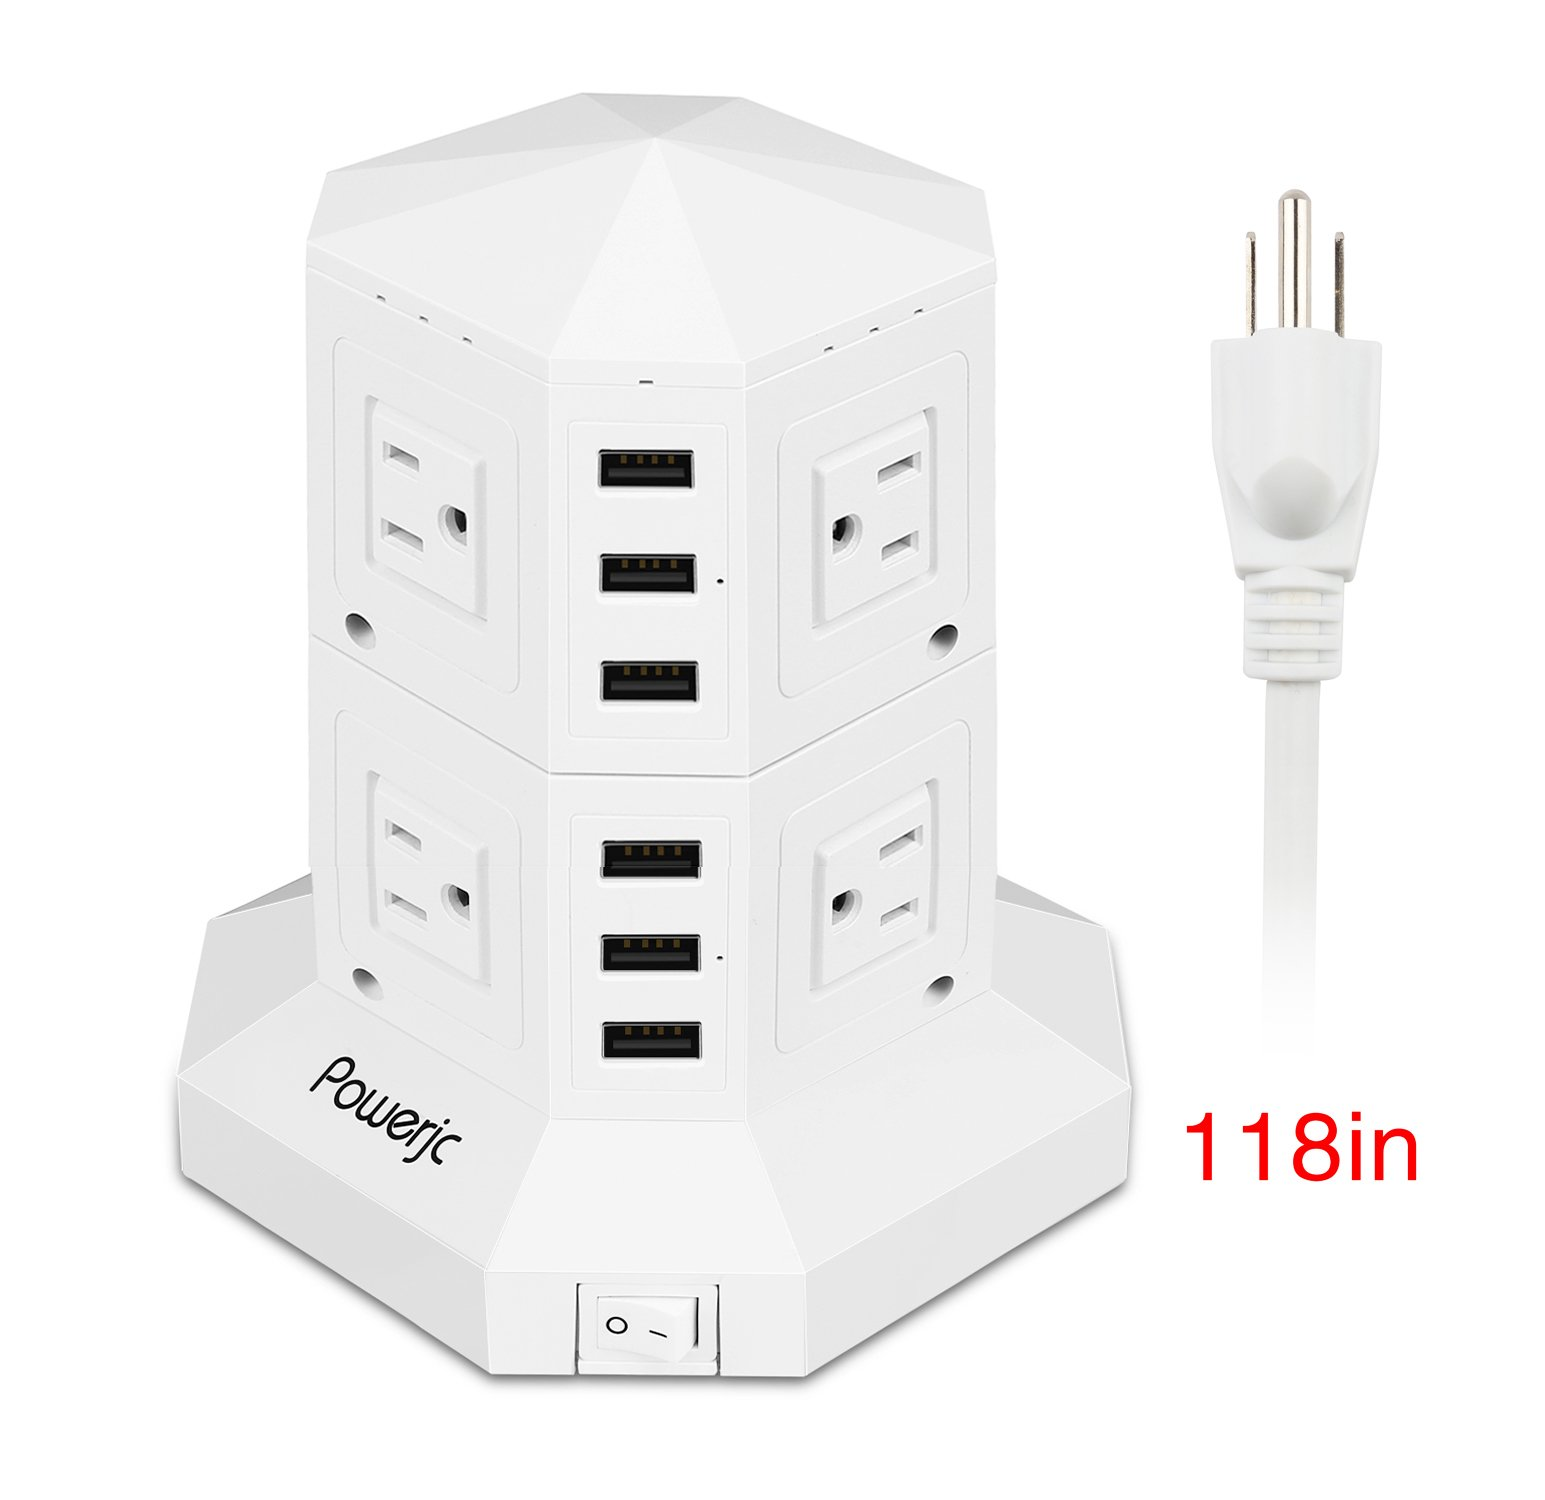 Power Strip Usb Surge Protector Tower 8 AC Outlets with 6 Usb ports Chargers White-Powerjc